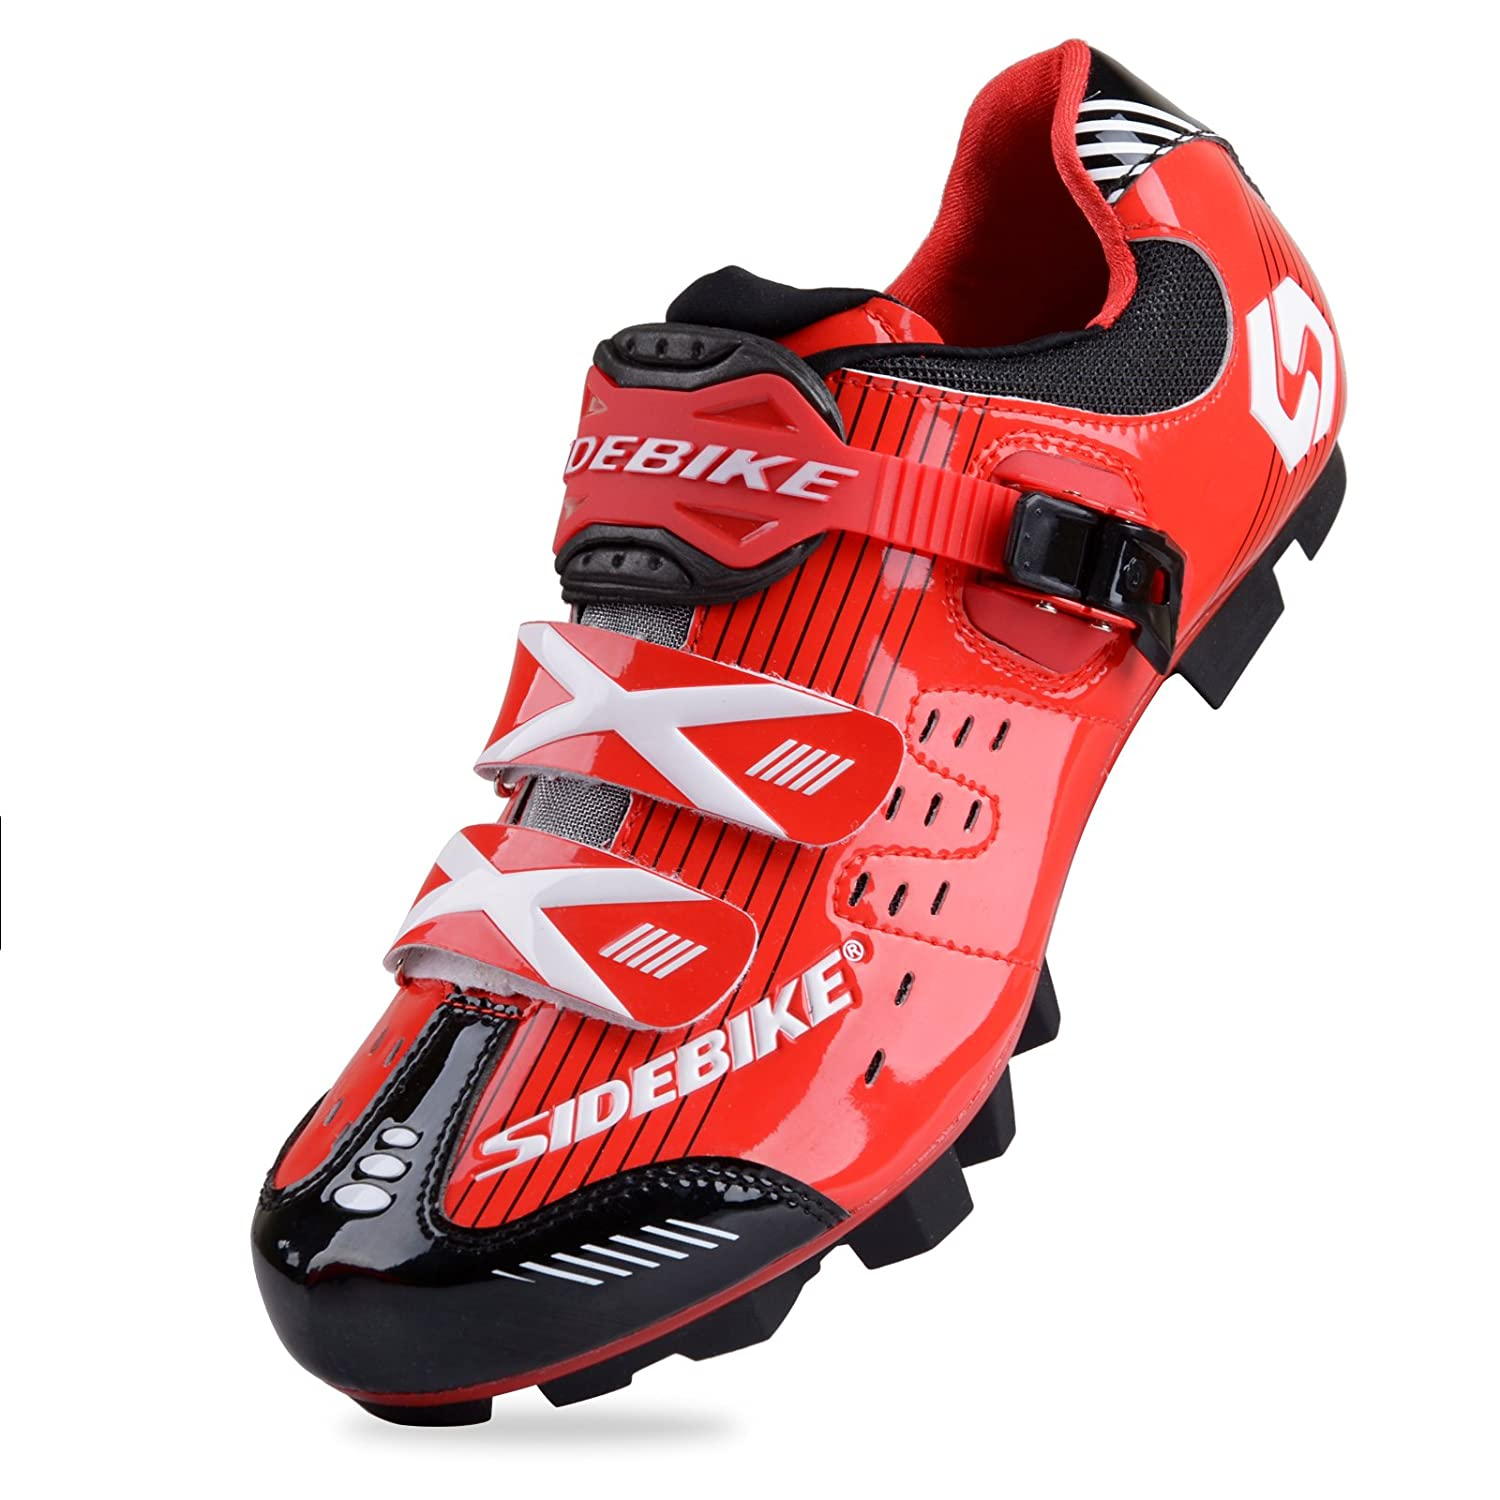 Red Black for MTB Smartodoors Sidebike SD002 Men's All-Around Road Cycling shoes with Carbon Soles